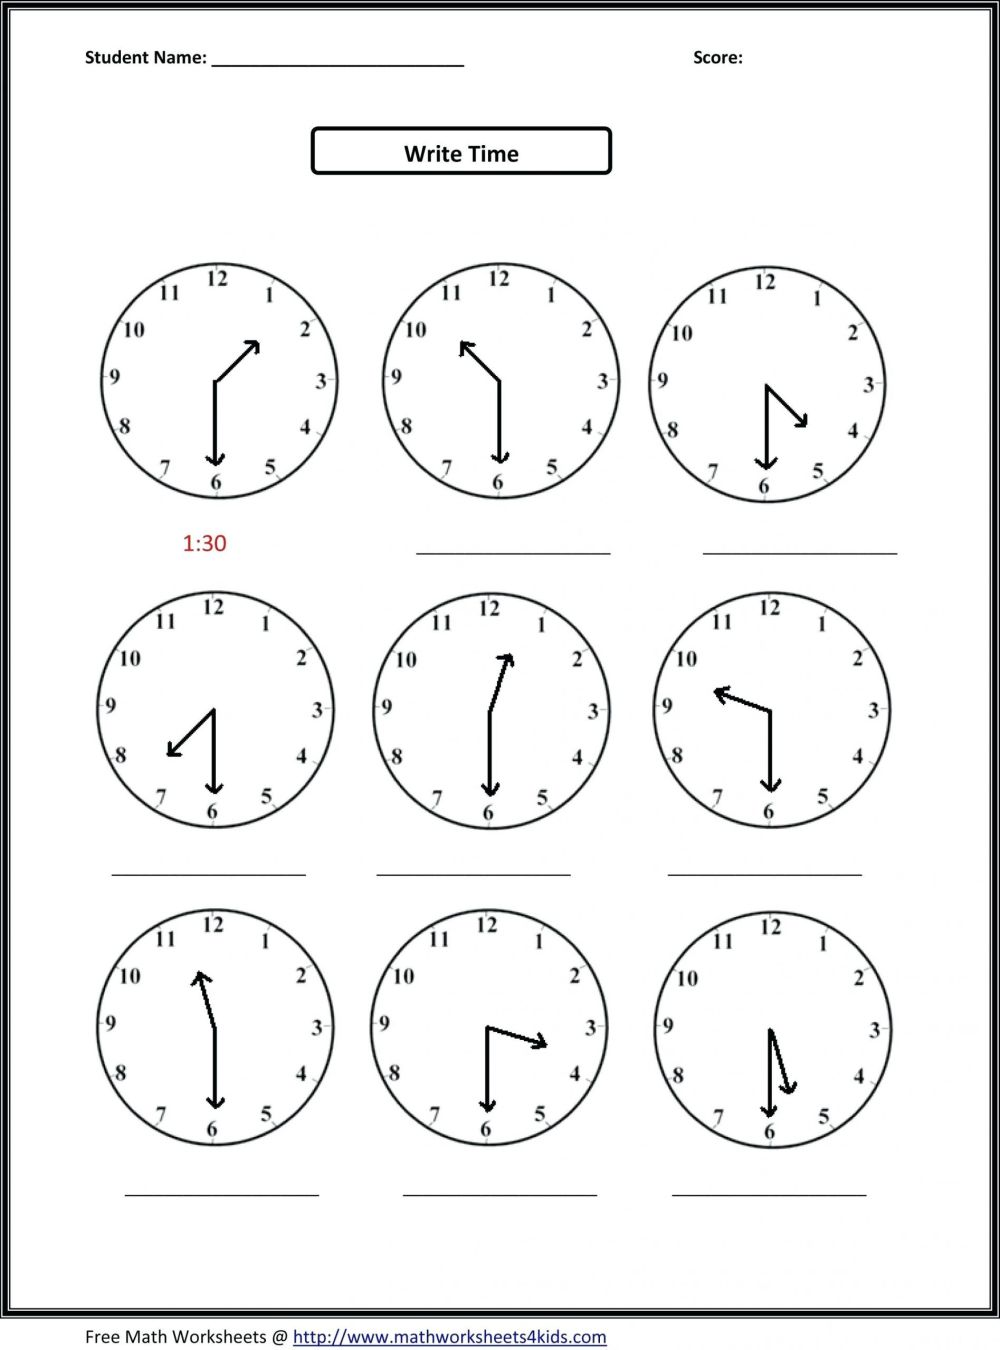 medium resolution of 4 Free Math Worksheets Second Grade 2 Addition Add 3 Single Digit Numbers -  apocalomegaproductions.com